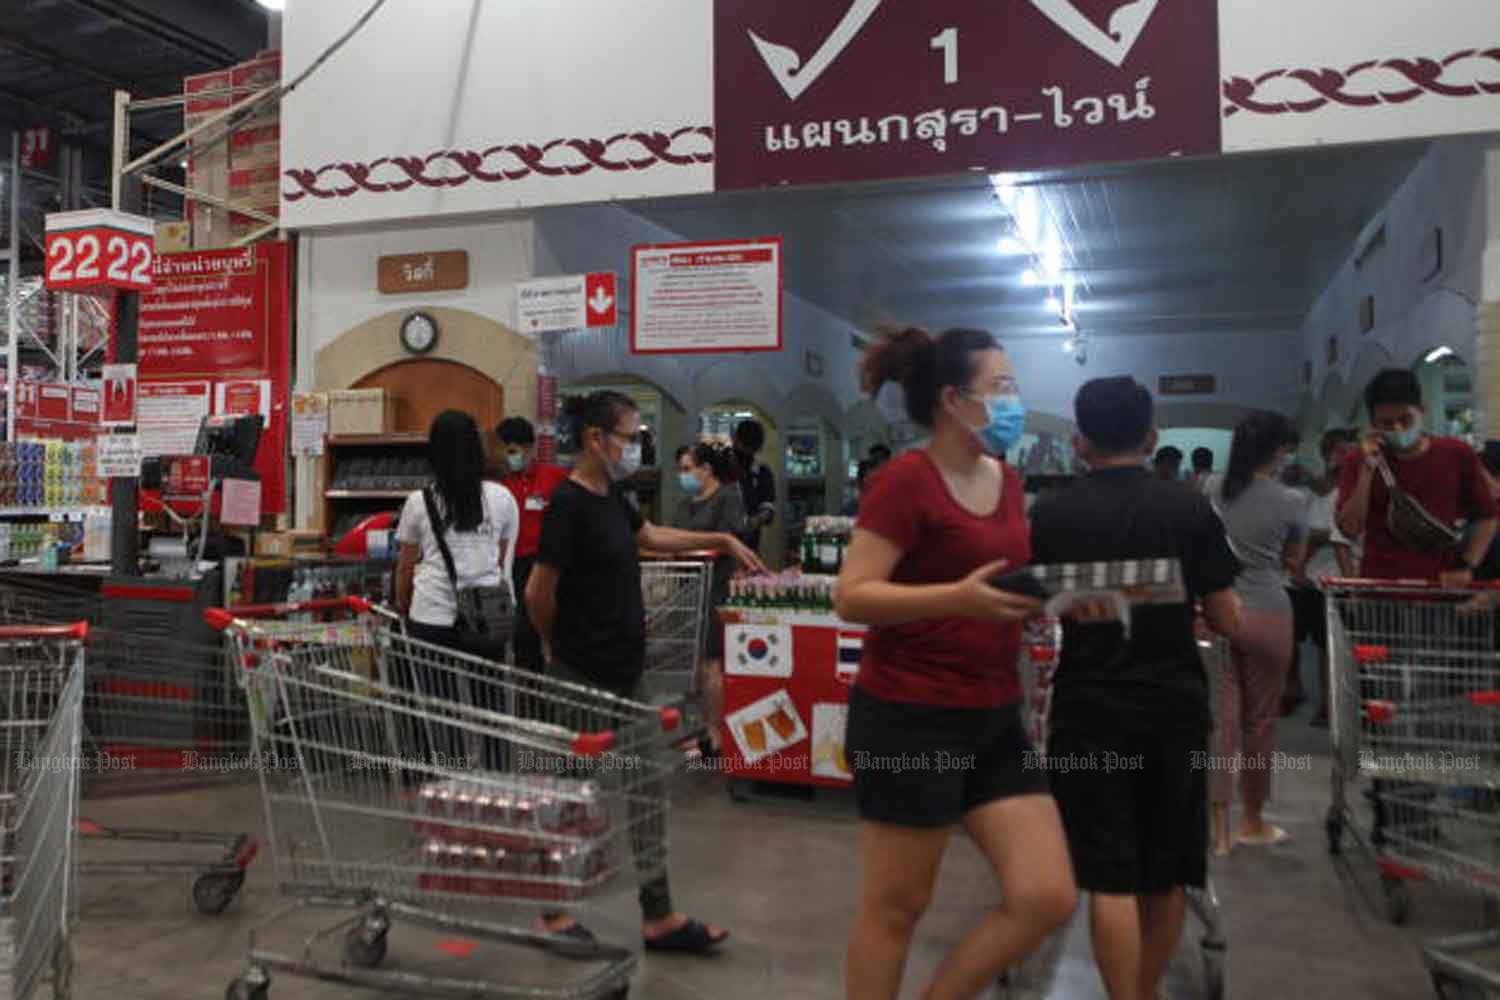 Shoppers throng the liquor section of a superstore after City Hall banned the sale of alcohol in the capital for 10 days starting on Friday in the latest bid to prevent social gatherings.(Photo by Arnun Chonmahatrakool)